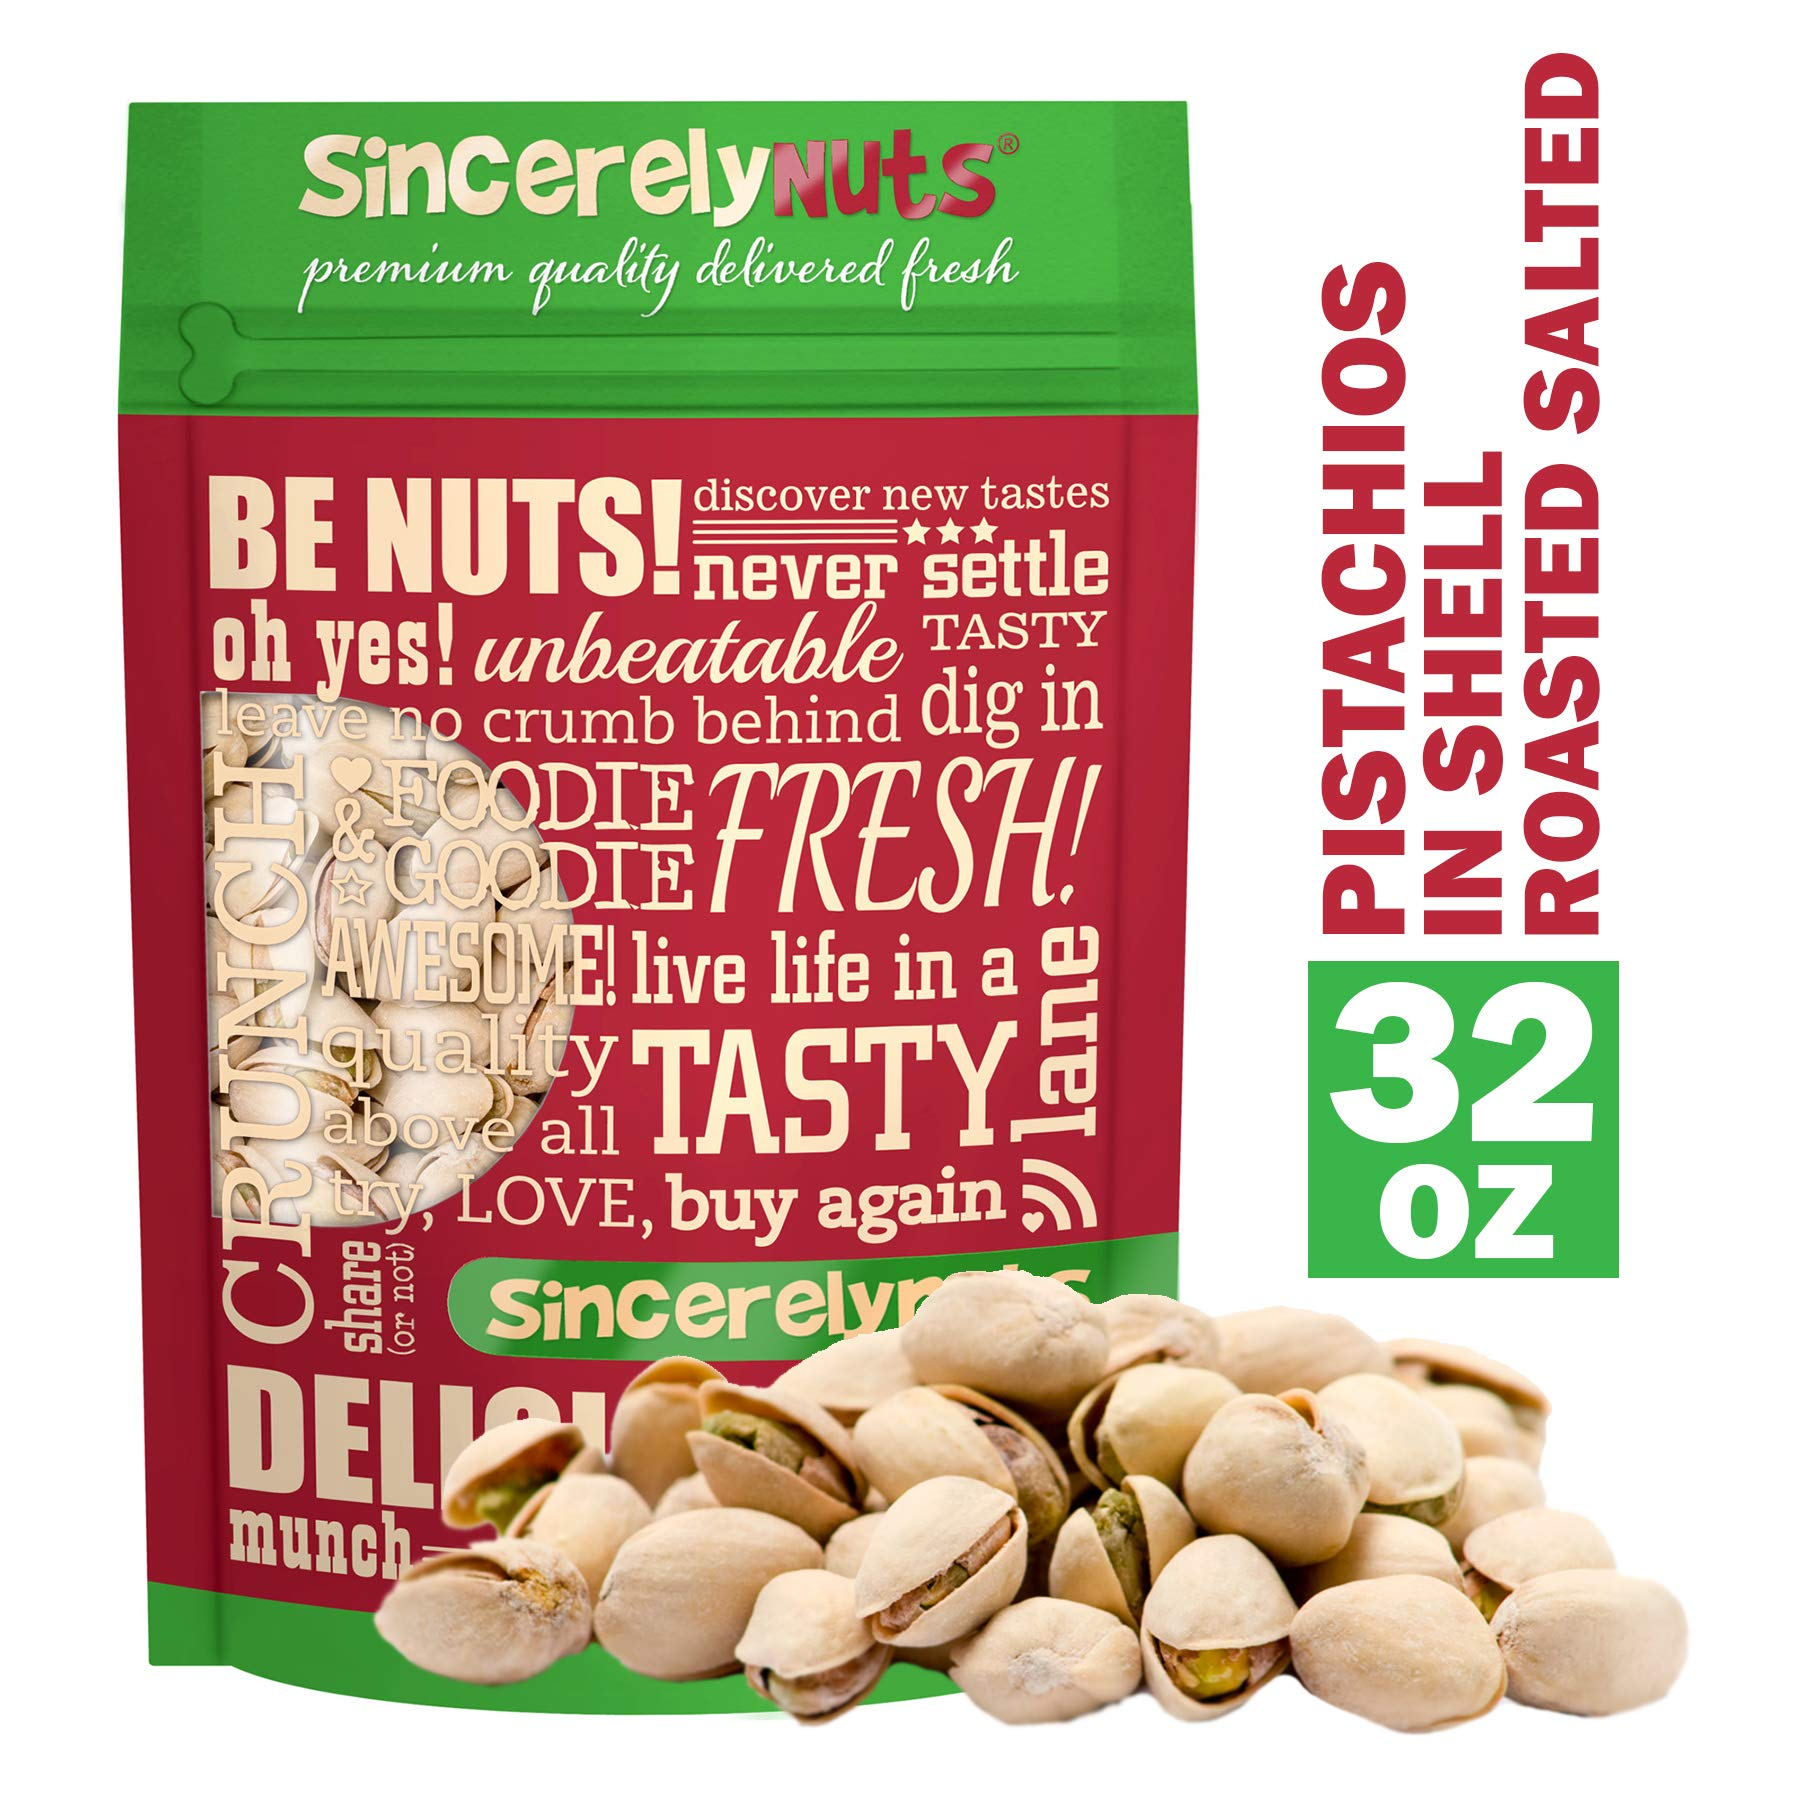 Sincerely Nuts Large Pistachios Roasted & Salted in Shell - 2Lb. Bag | Healthy Snack Food | Great for Cooking | Source of Fiber, Protein, Vitamins & Minerals | Gourmet Flavor | Kosher & Gluten Free